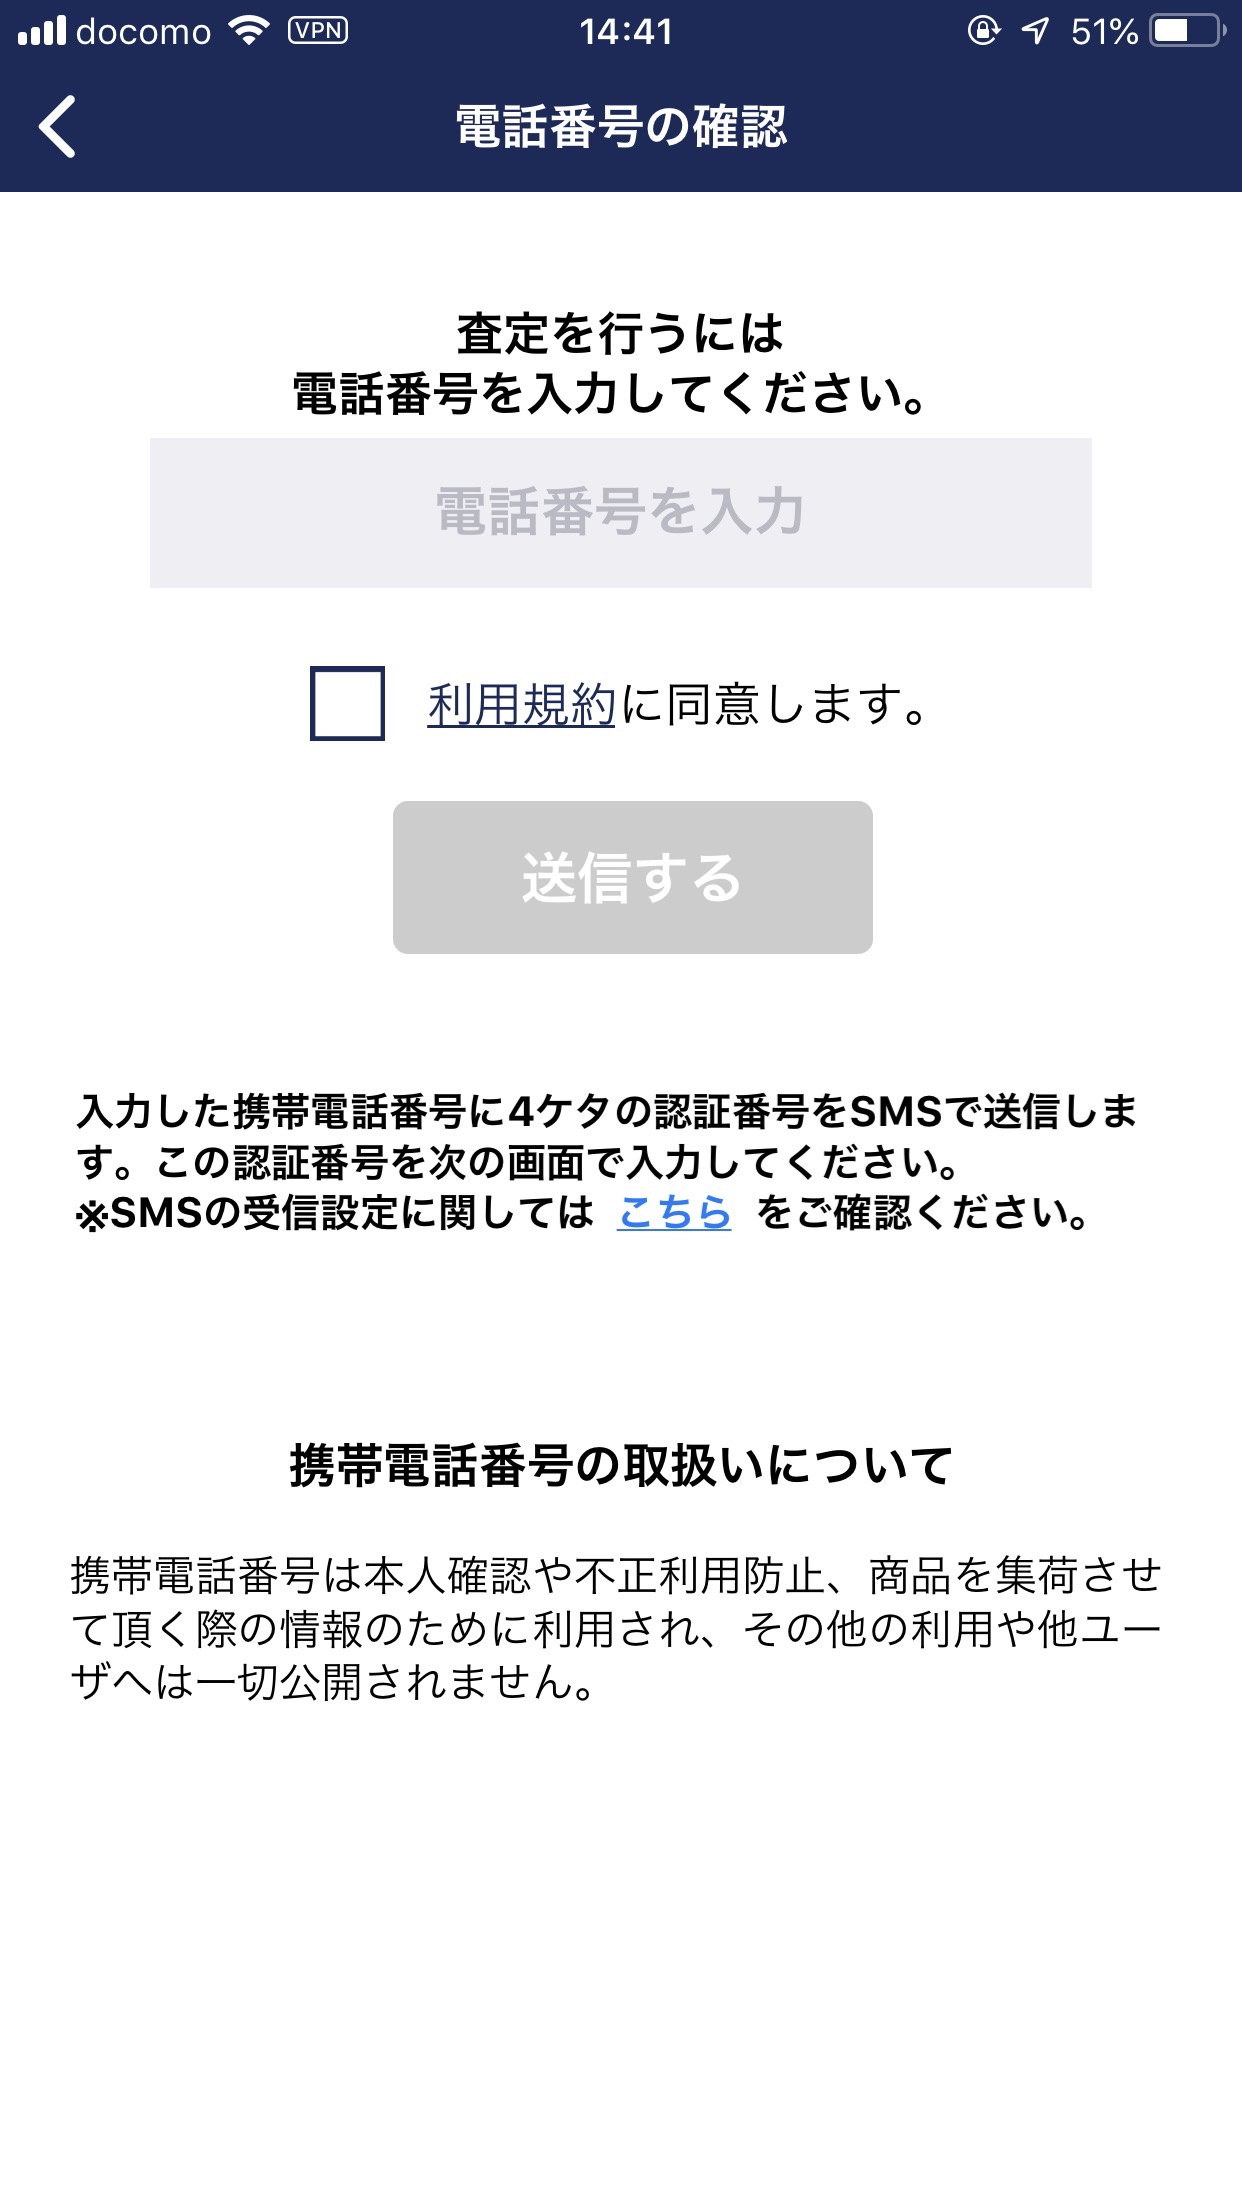 【iOS/Android】すぐ売れる!GEOのゲーム即金買取アプリ「ゲオスグ」 3